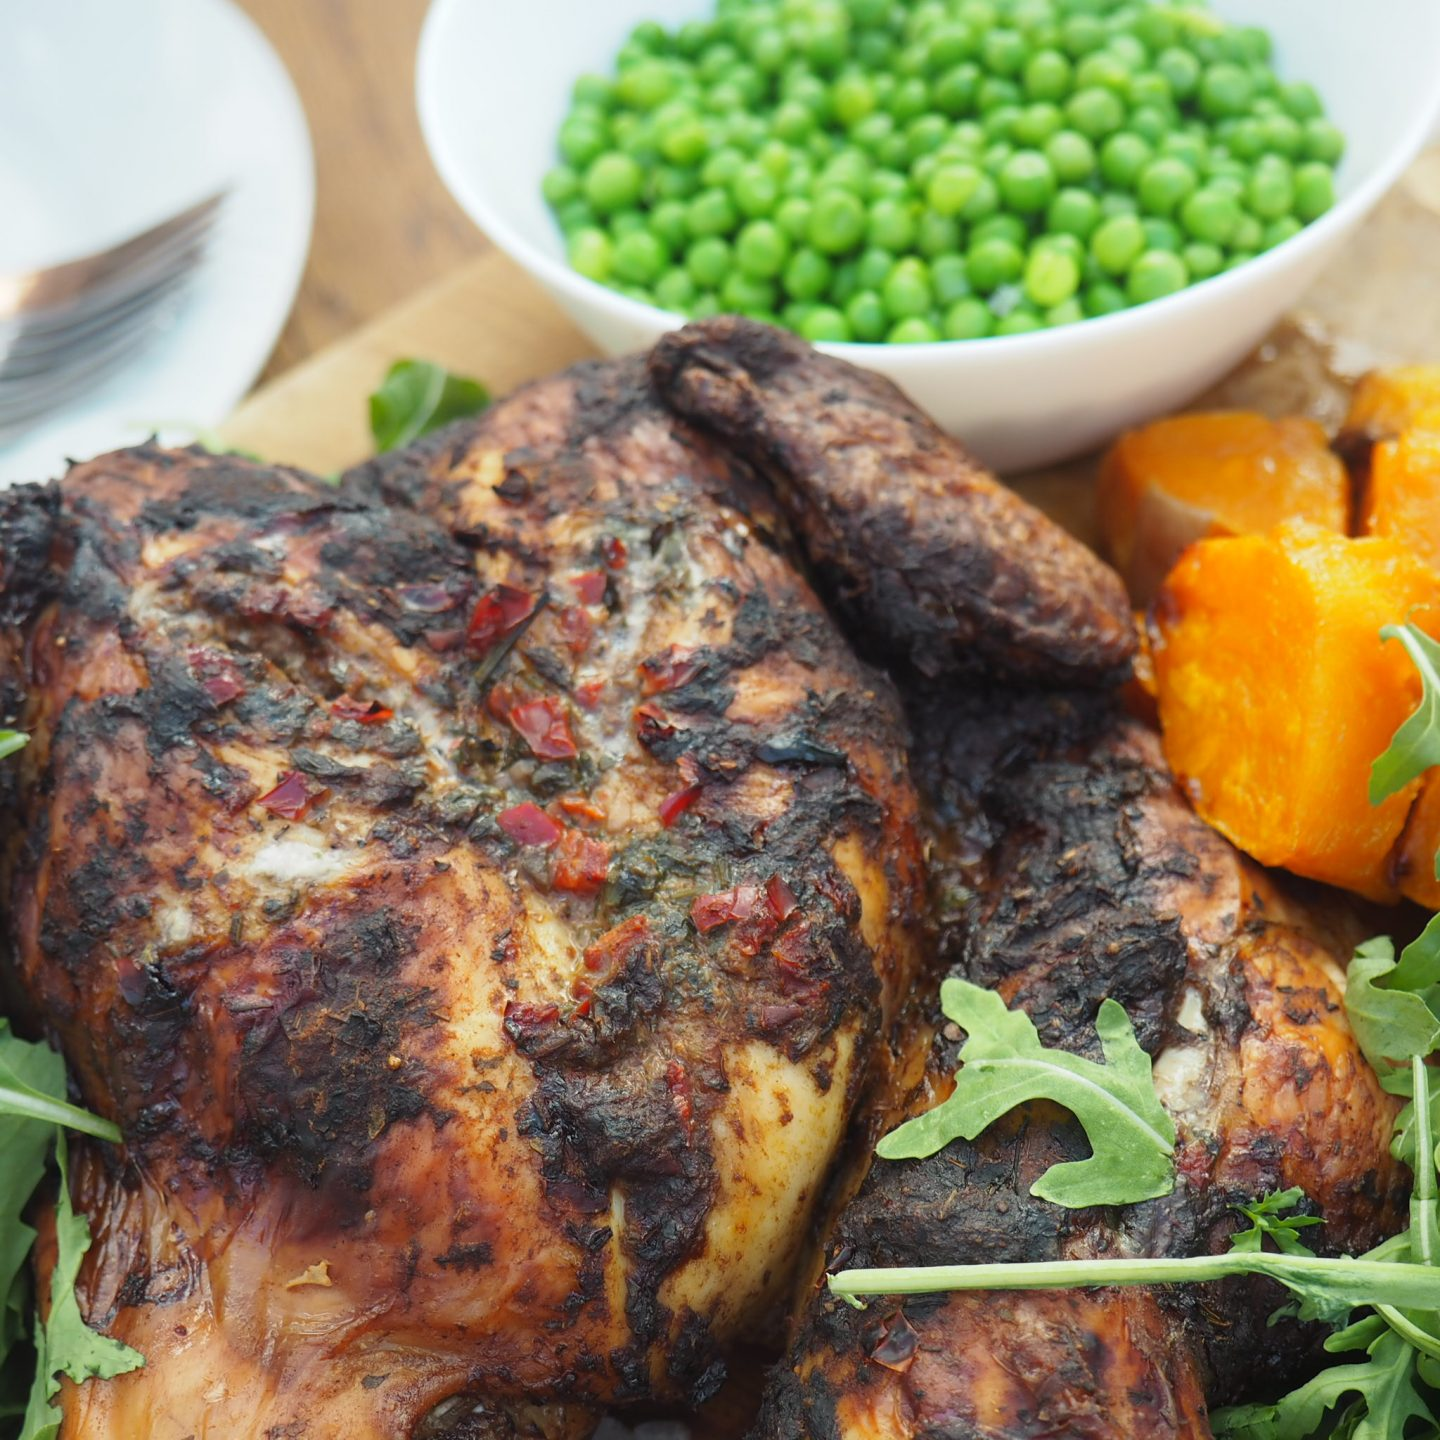 M&S Jerk Chicken Meal Idea